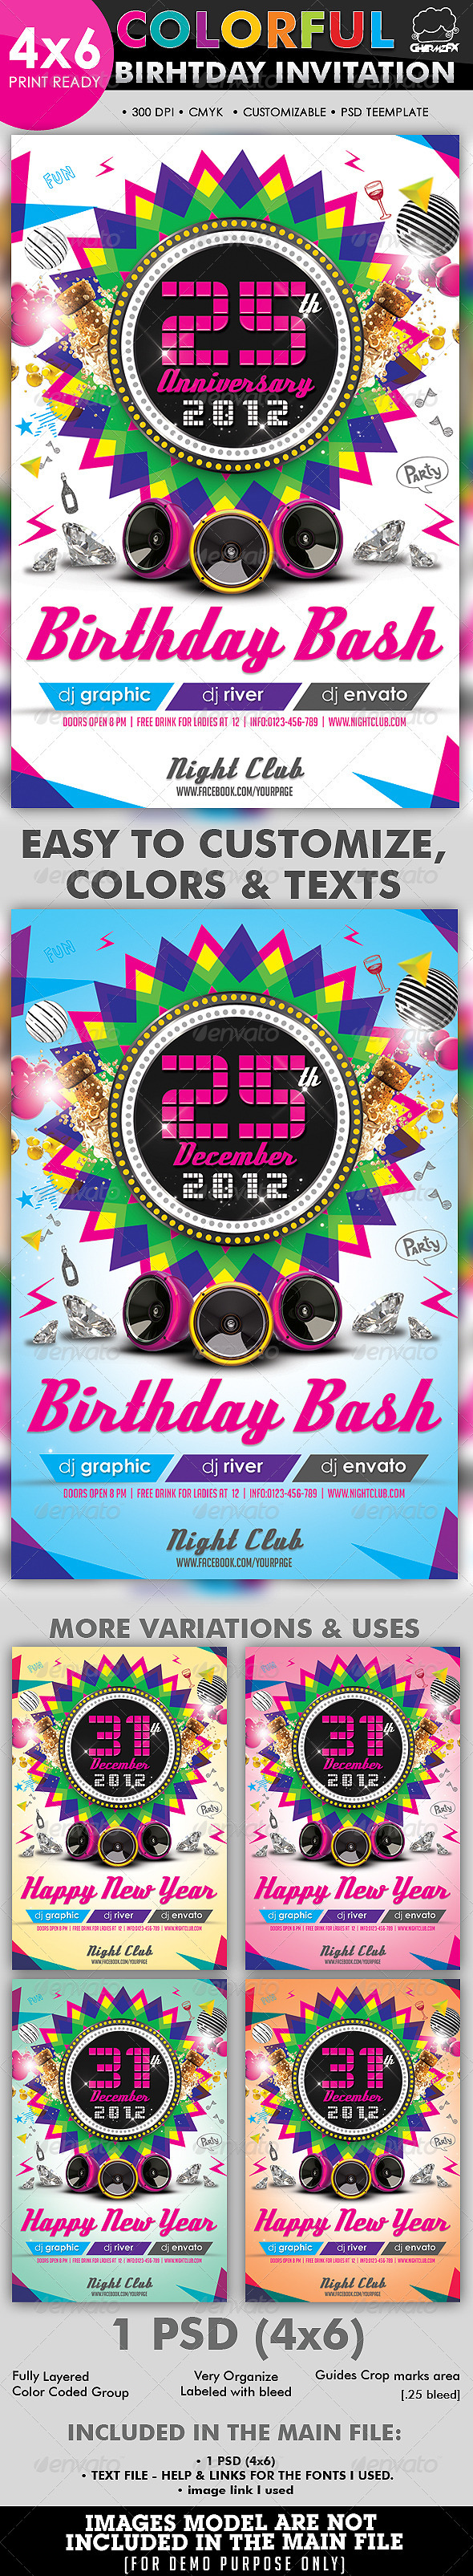 GraphicRiver Colorful Birthday Invitation Flyer Template 2866669